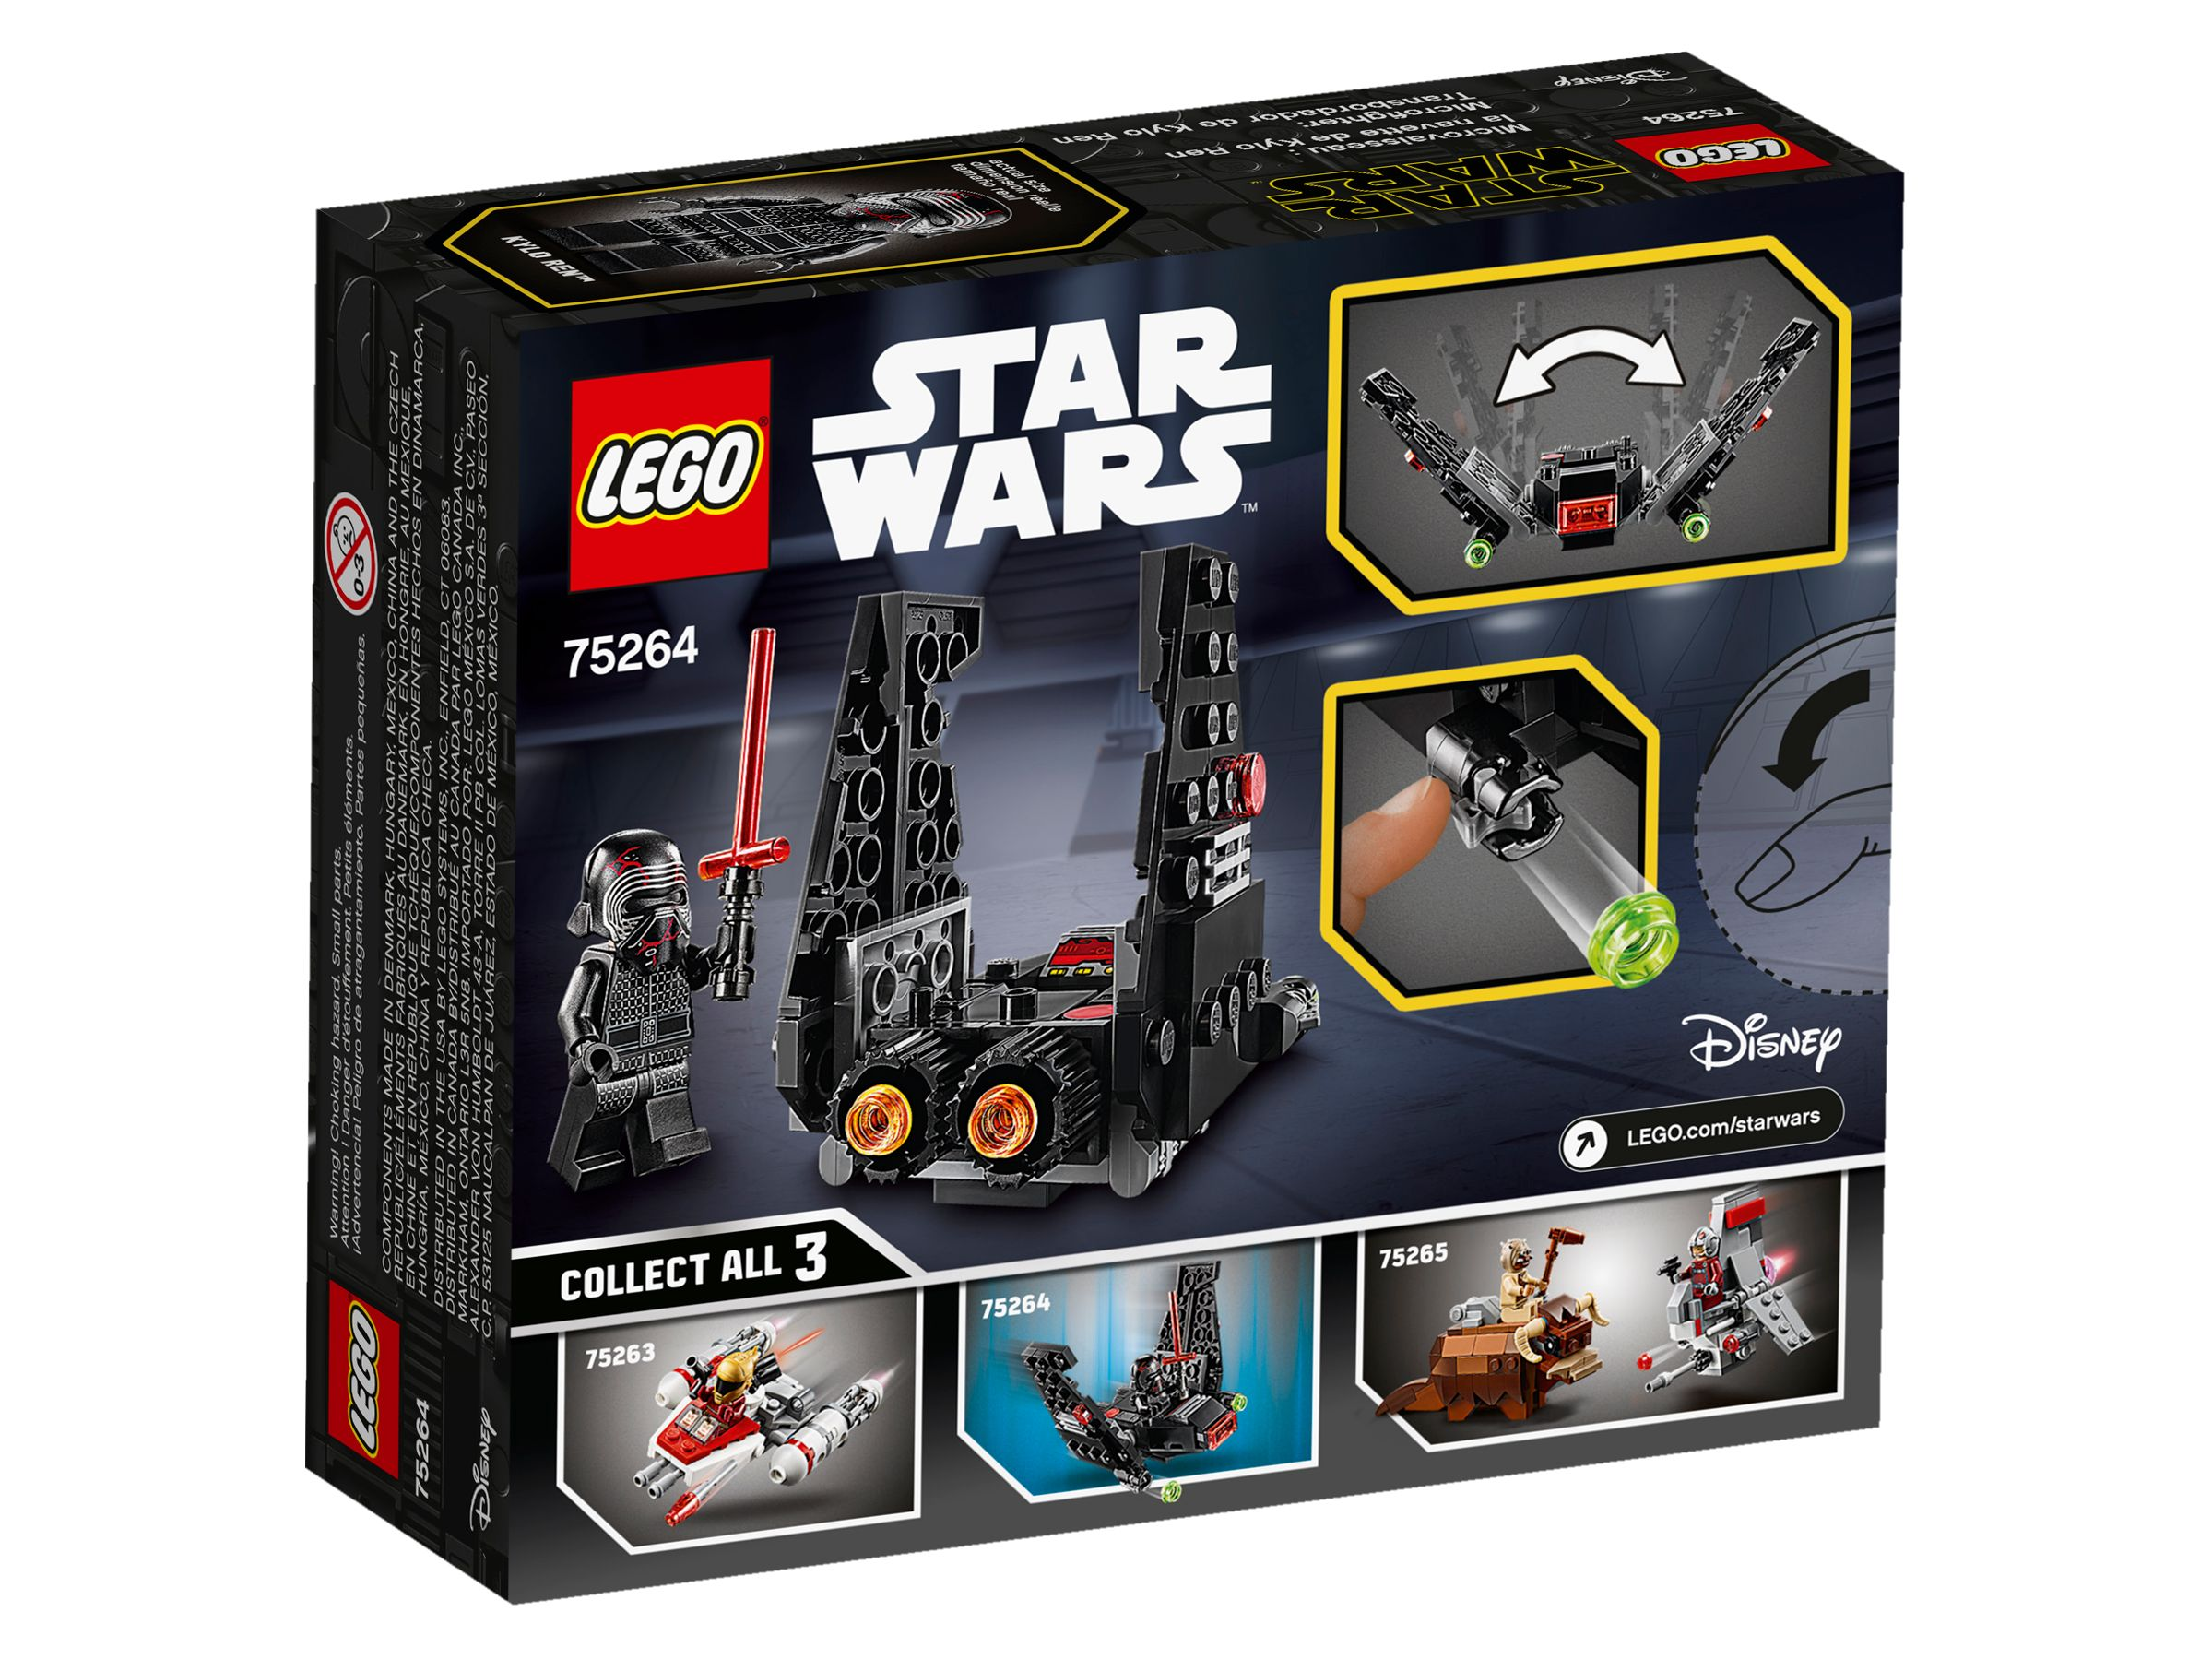 LEGO Star Wars 75264 Kylo Rens Shuttle™ Microfighter LEGO_75264_alt4.jpg